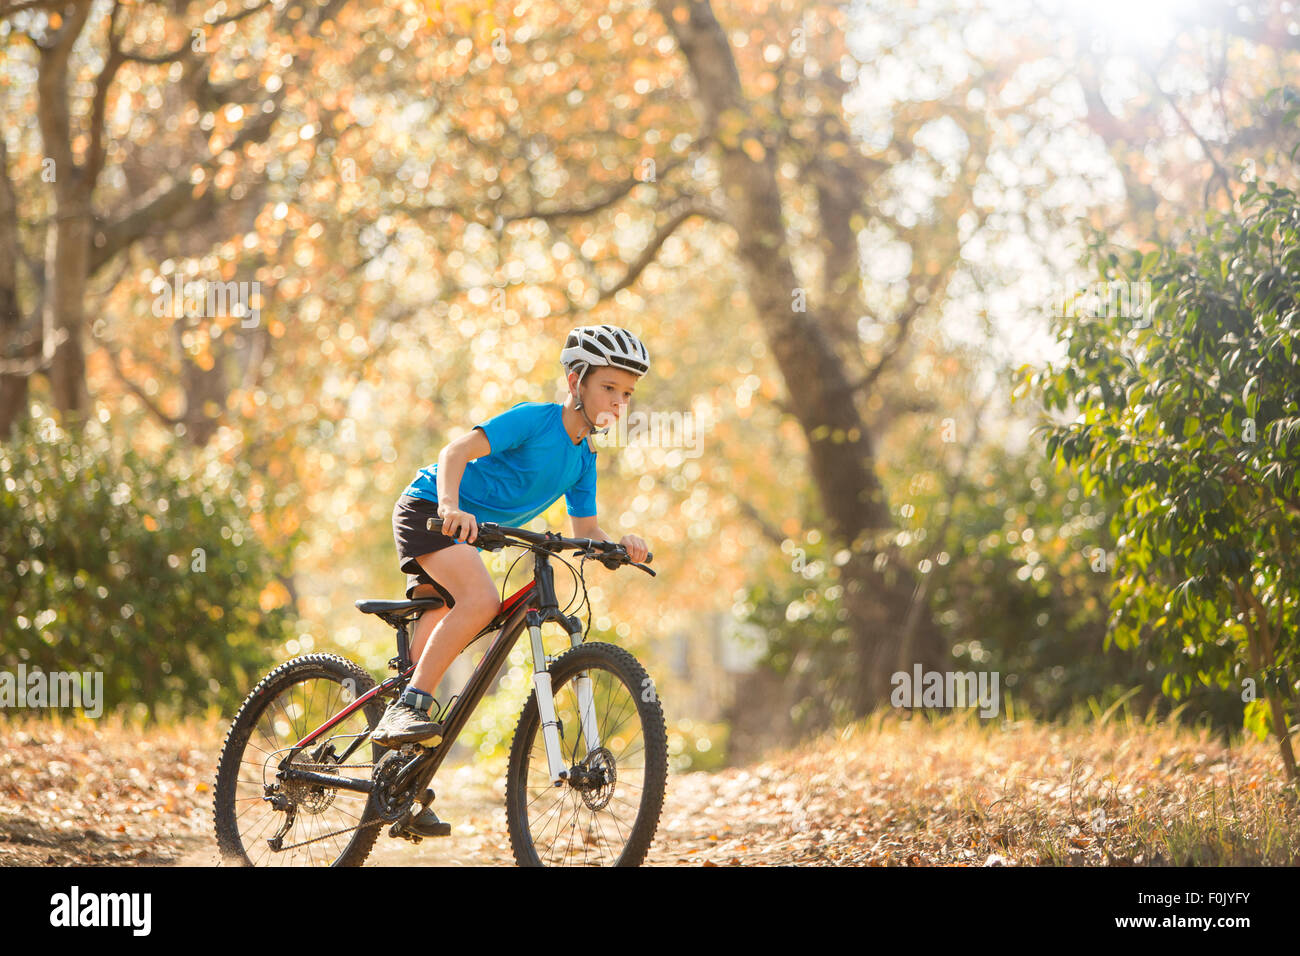 Boy mountain biking on path in woods - Stock Image